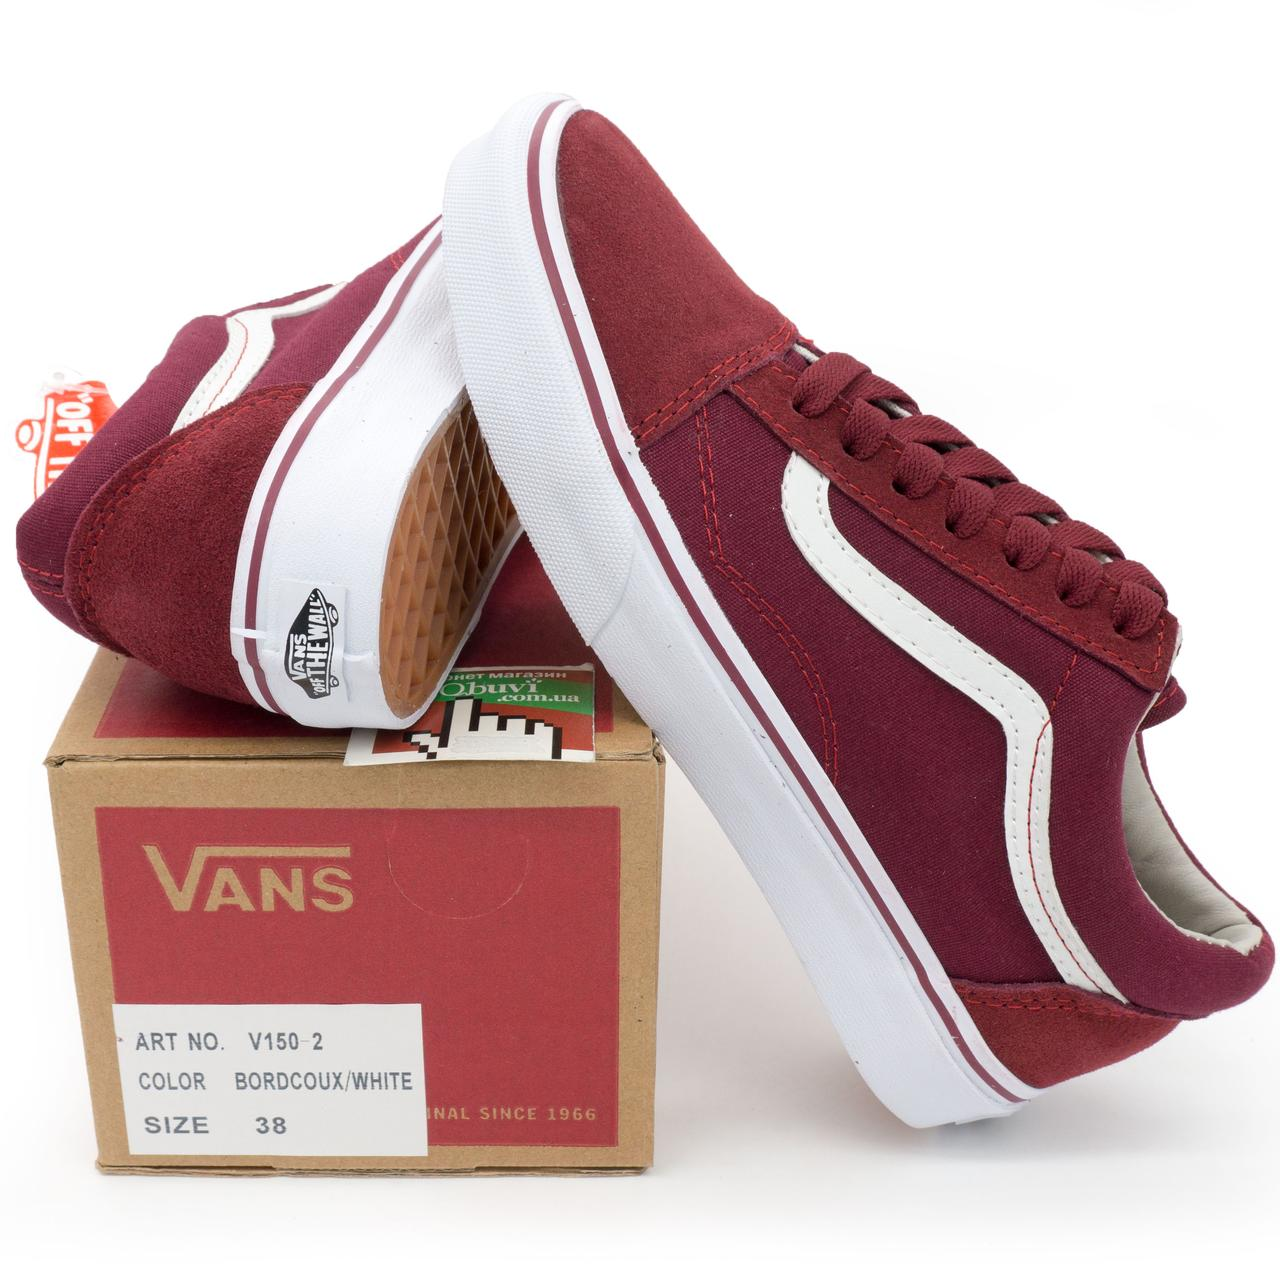 Кеды Vans old skool Венс олд скул бордовые, натуральный замш Indonesia  р.(36, 38, 39) b12b7cb8a2a